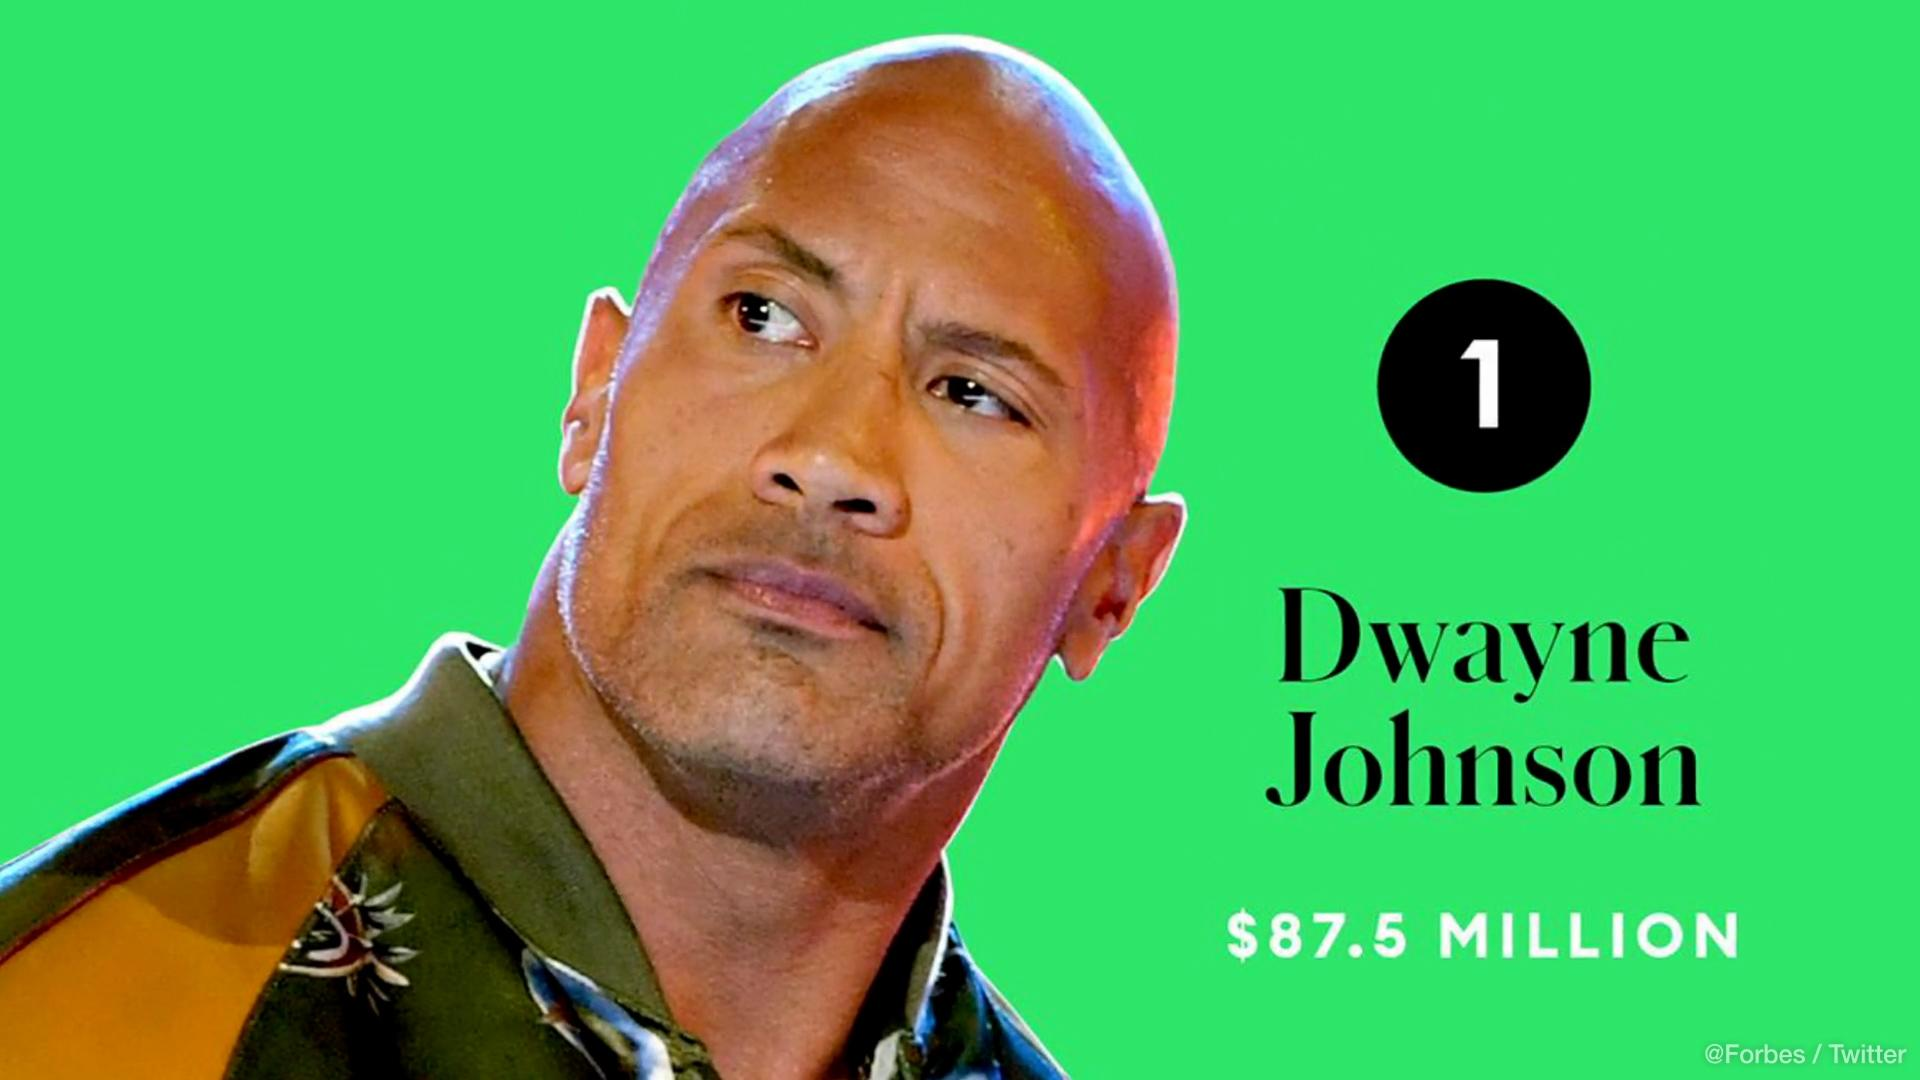 Dwayne Johnson hangs on to top spot on Forbes highest-paid